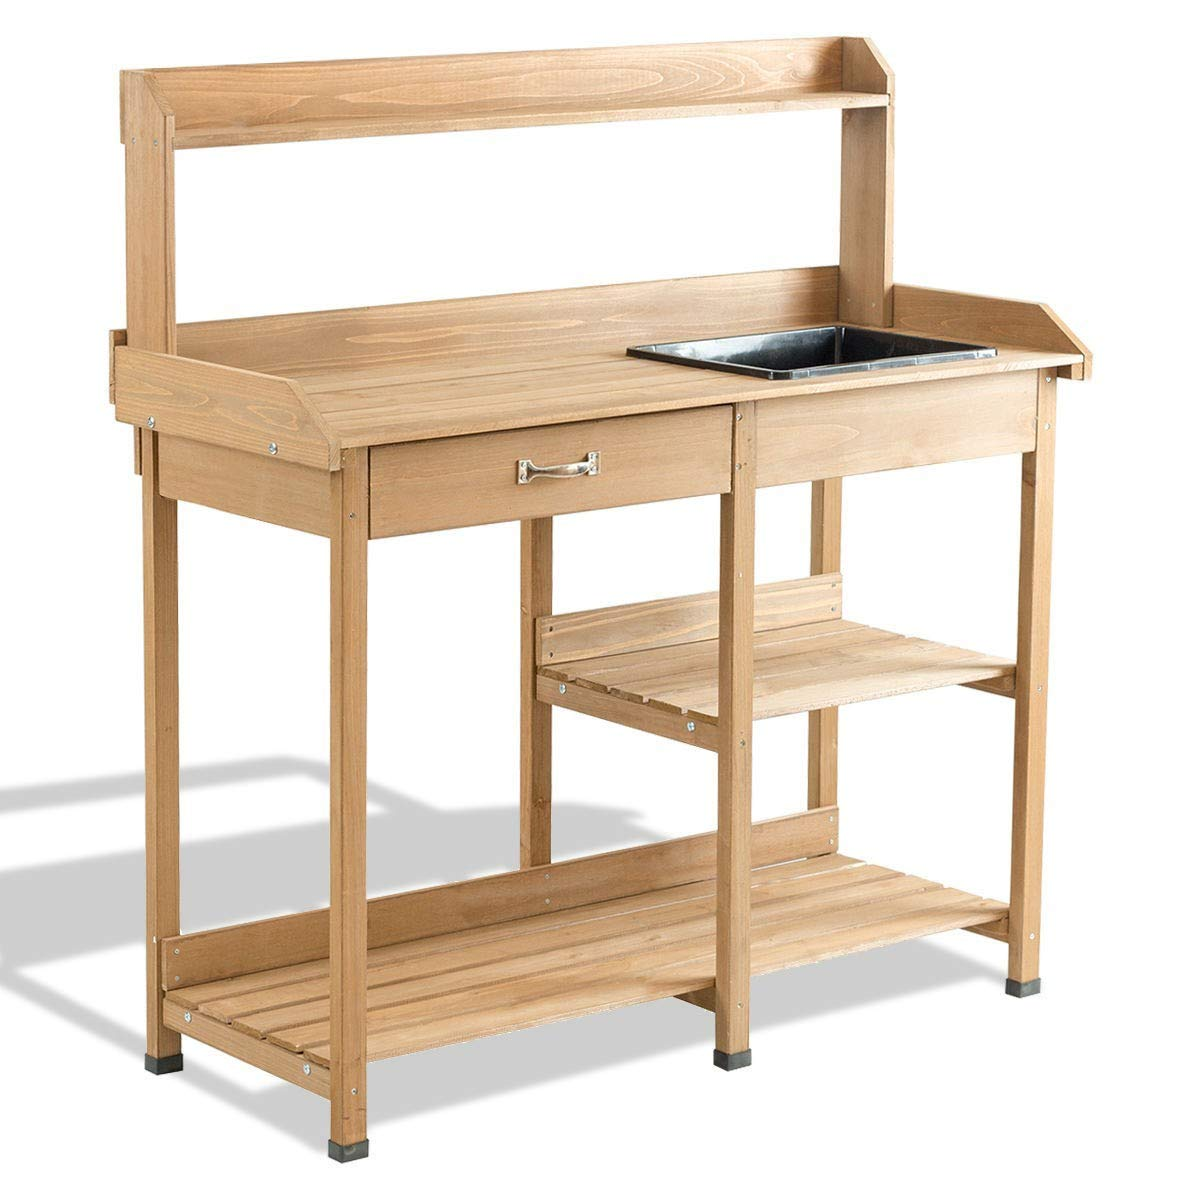 USA_BEST_SELLER Garden Wooden Planting Potting Bench Table with Shelves Outdoor Indoor Work Station Potting Table